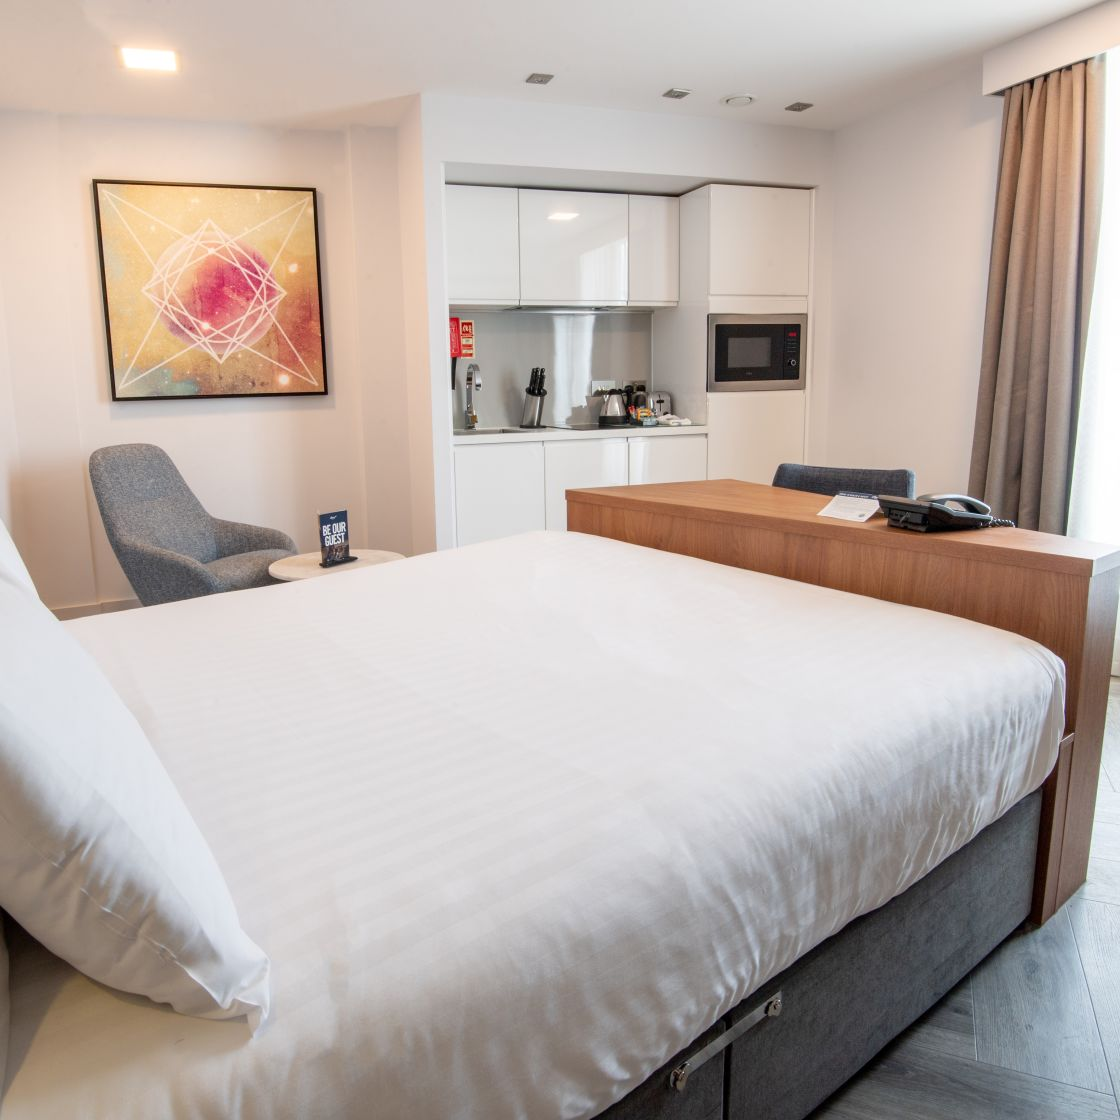 Smart Studio Studio Apartment in London. King Size Bed and Fitted Kitchen. IconInc @ Roomzzz